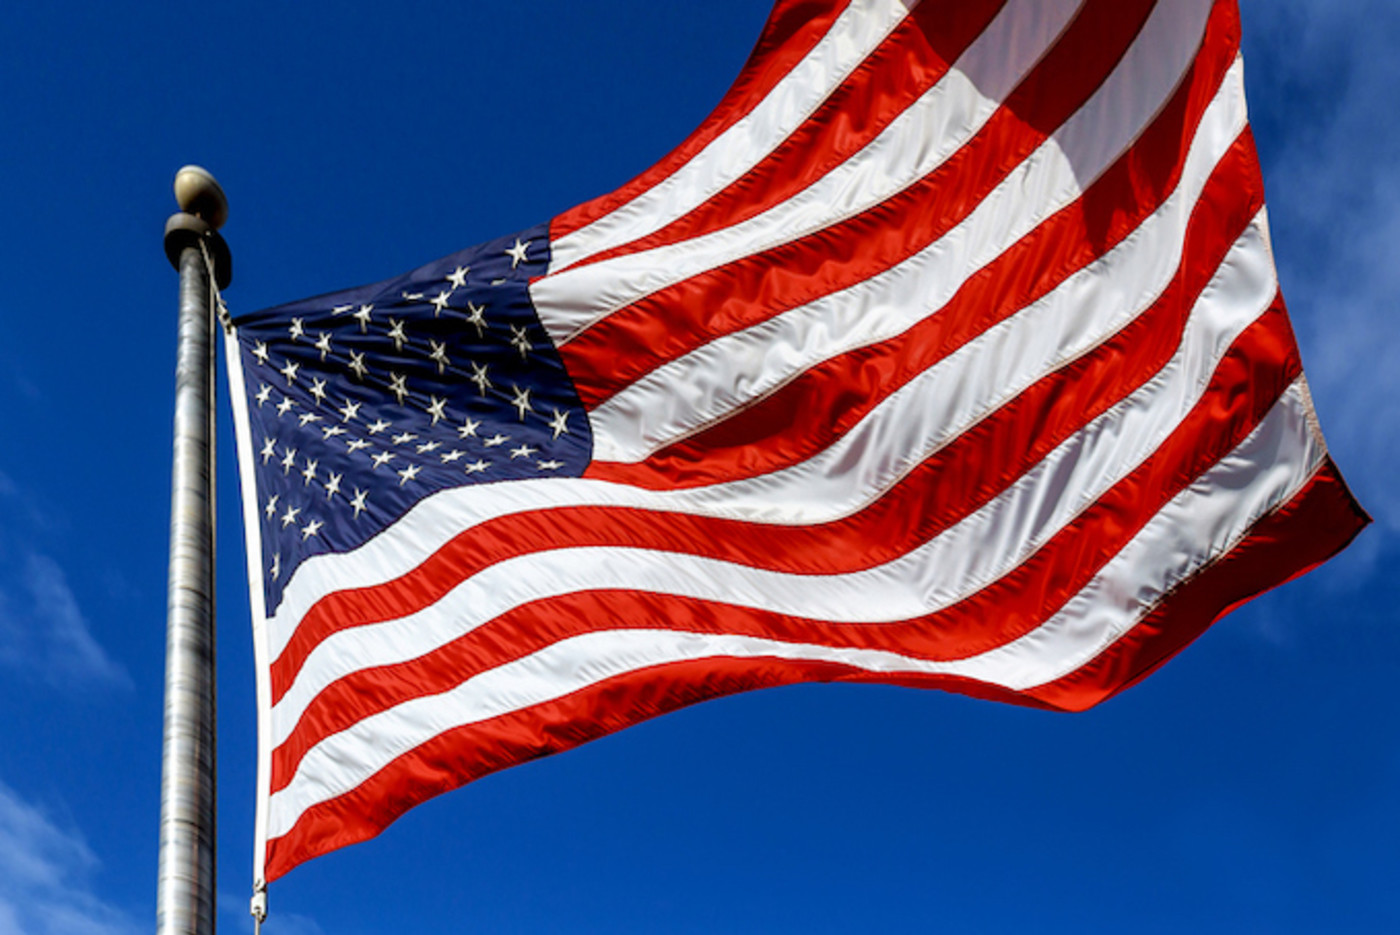 This is a picture of the American flag.